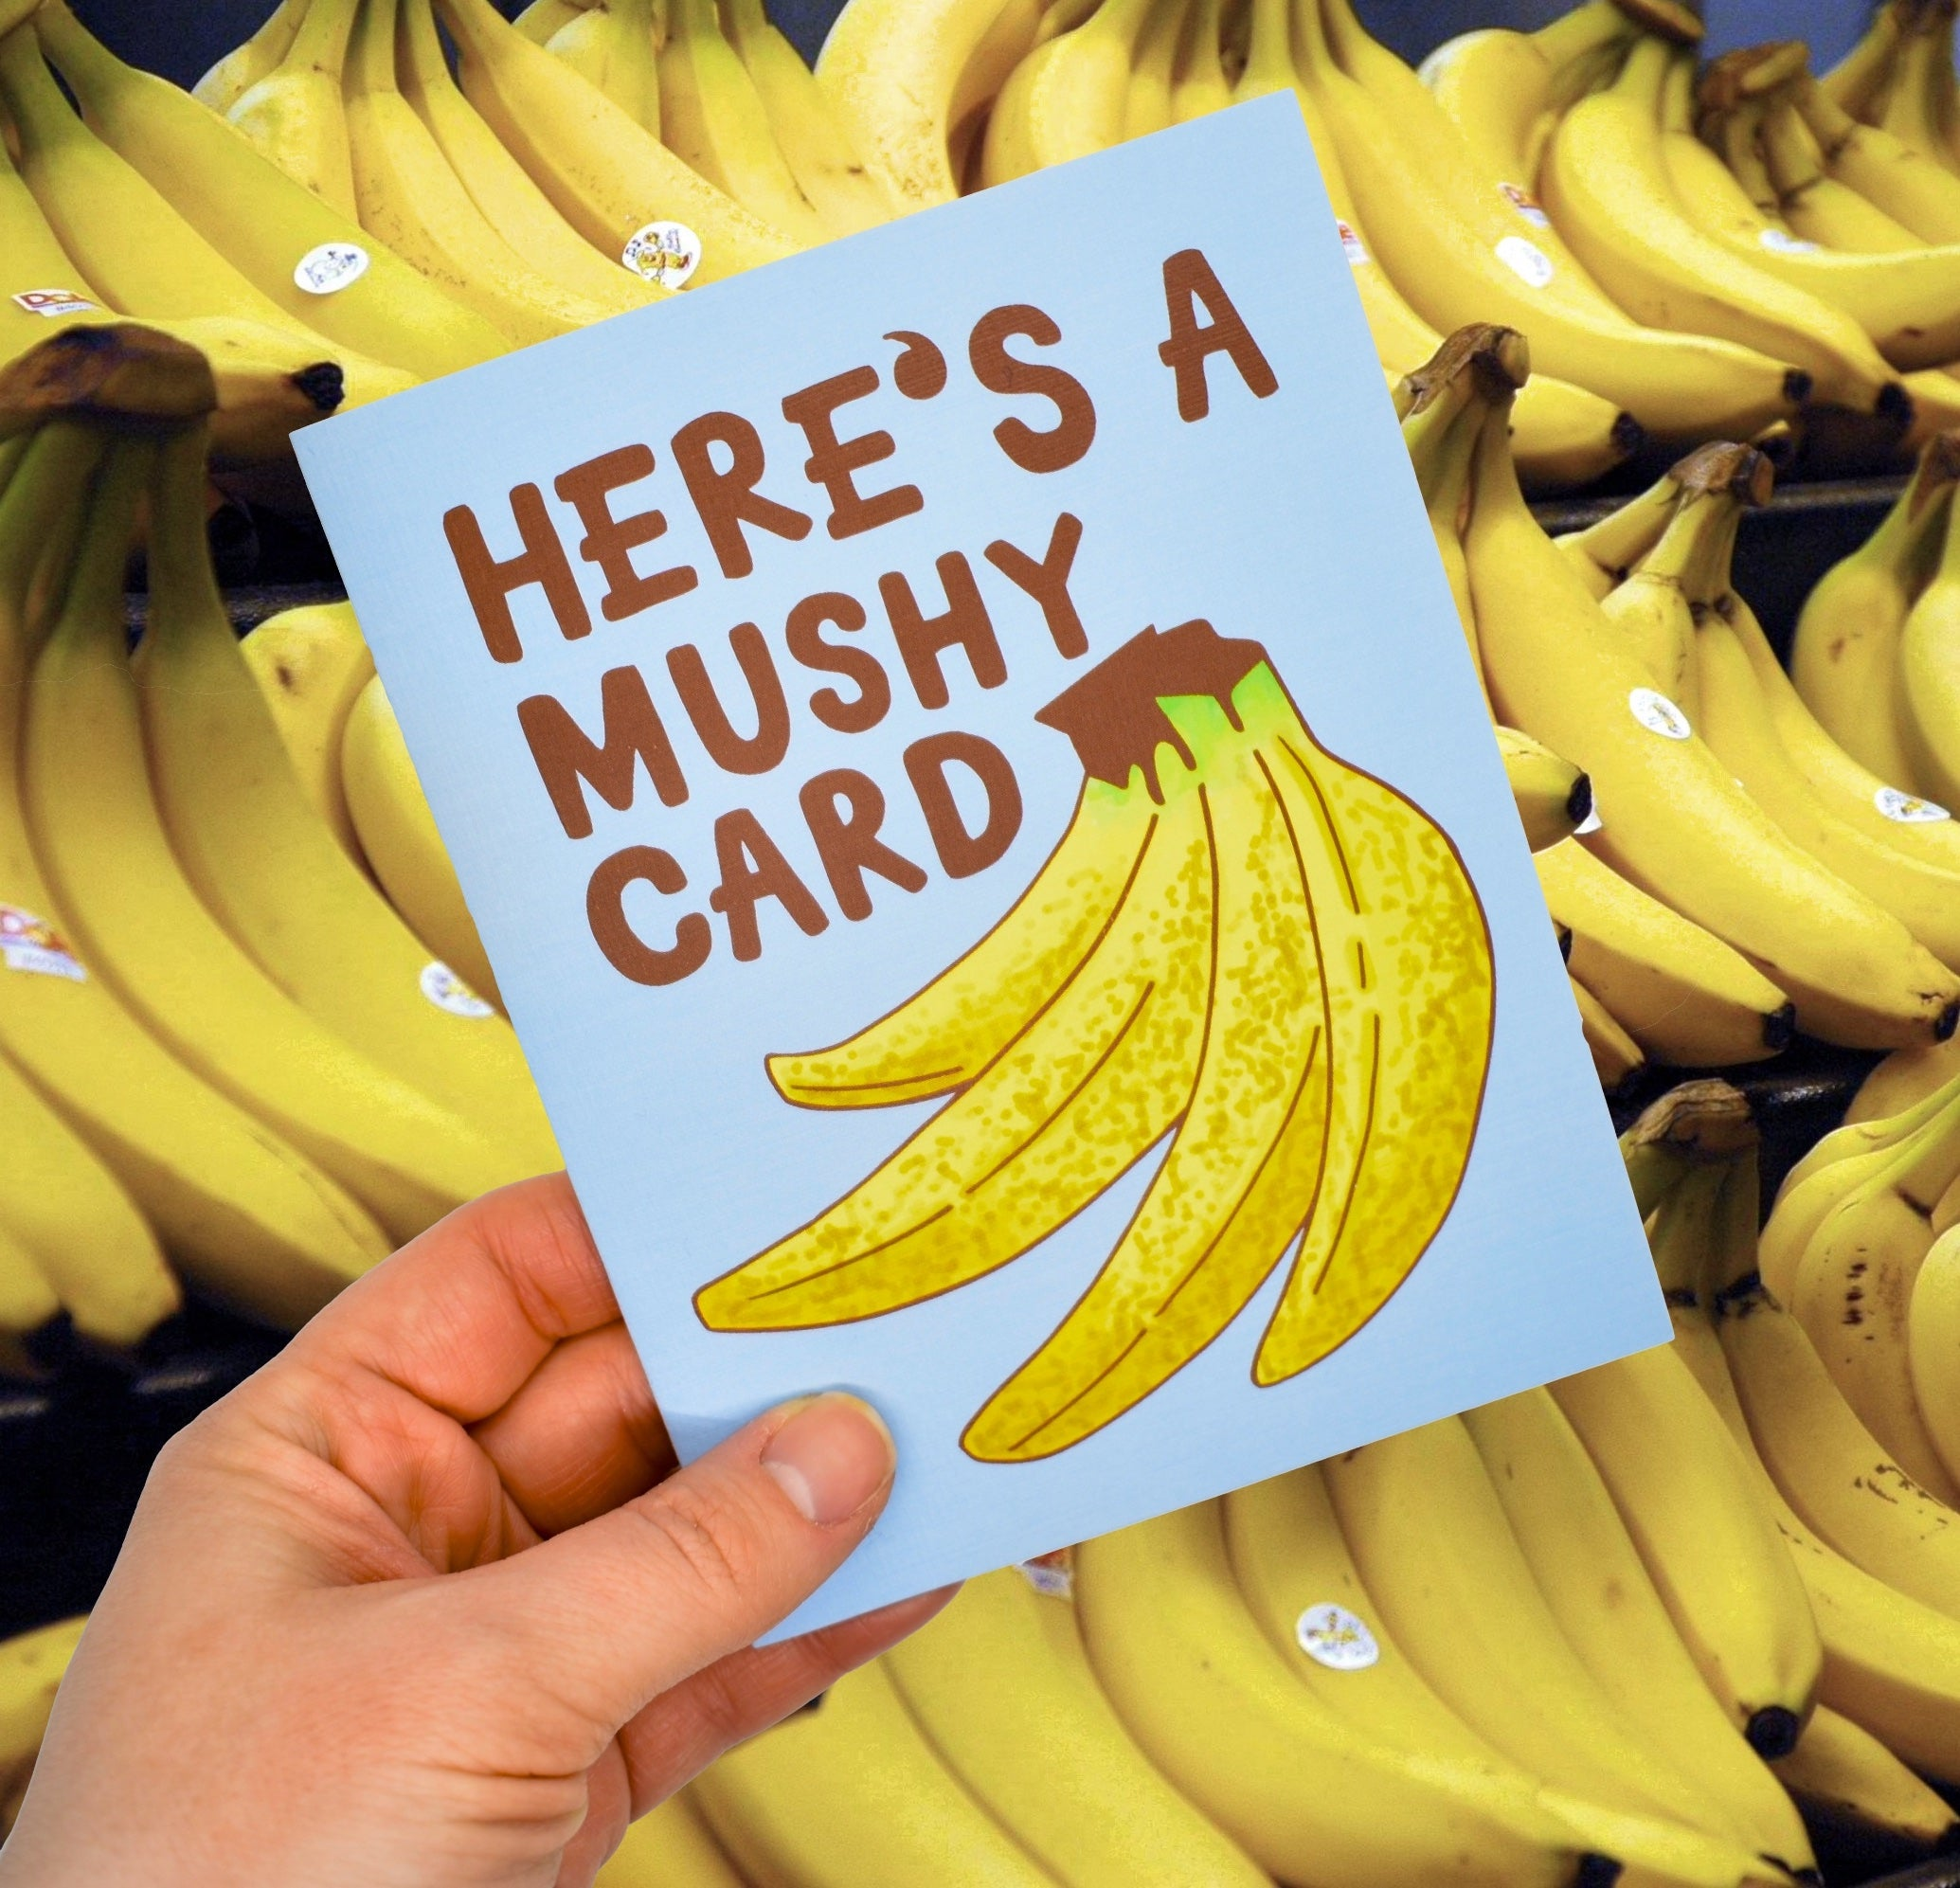 Here's a Mushy Card